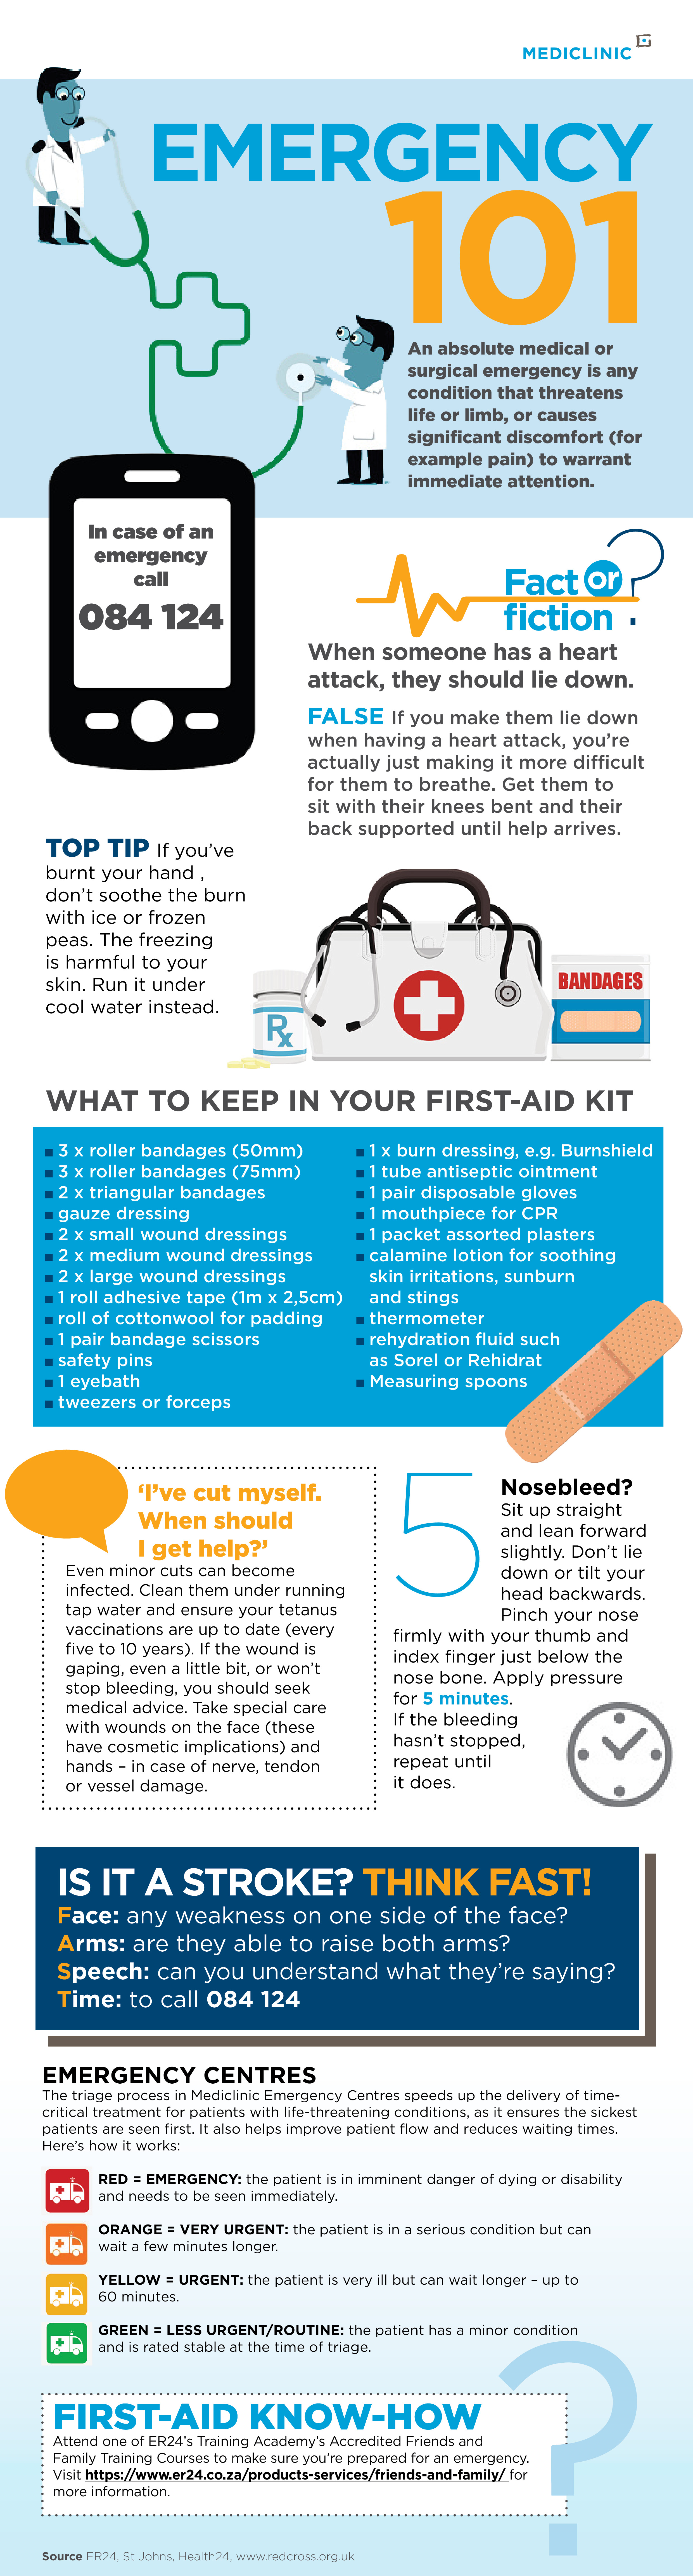 First aid infographicV2